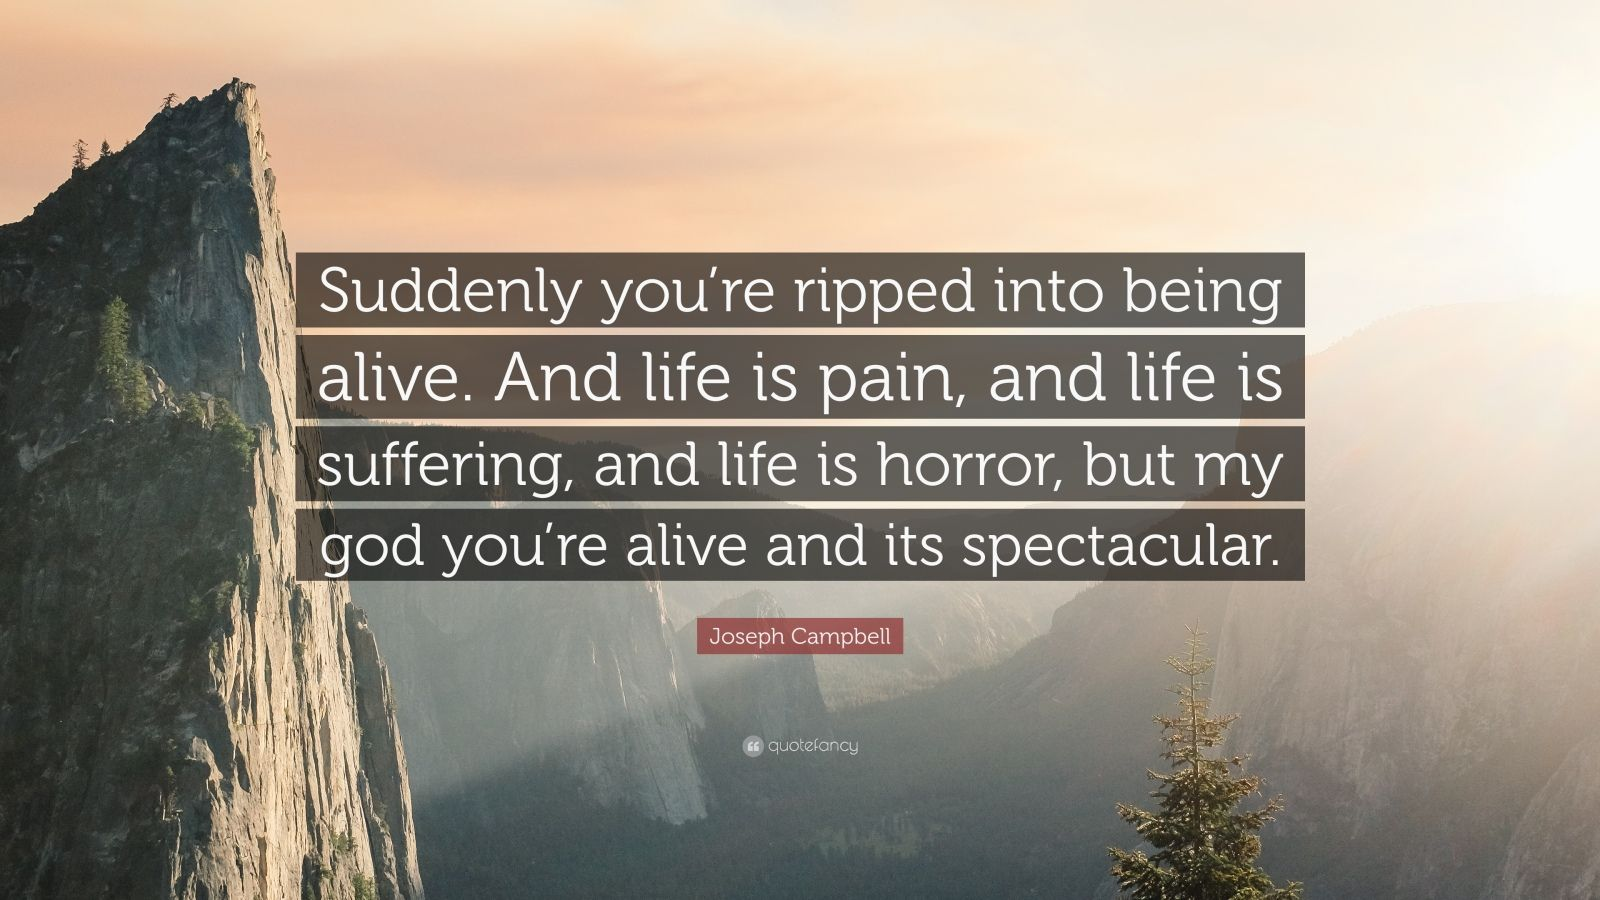 """Joseph Campbell Quote: """"Suddenly you're ripped into being alive. And life is pain, and life is suffering, and life is horror, but my god you're alive and its spectacular."""""""